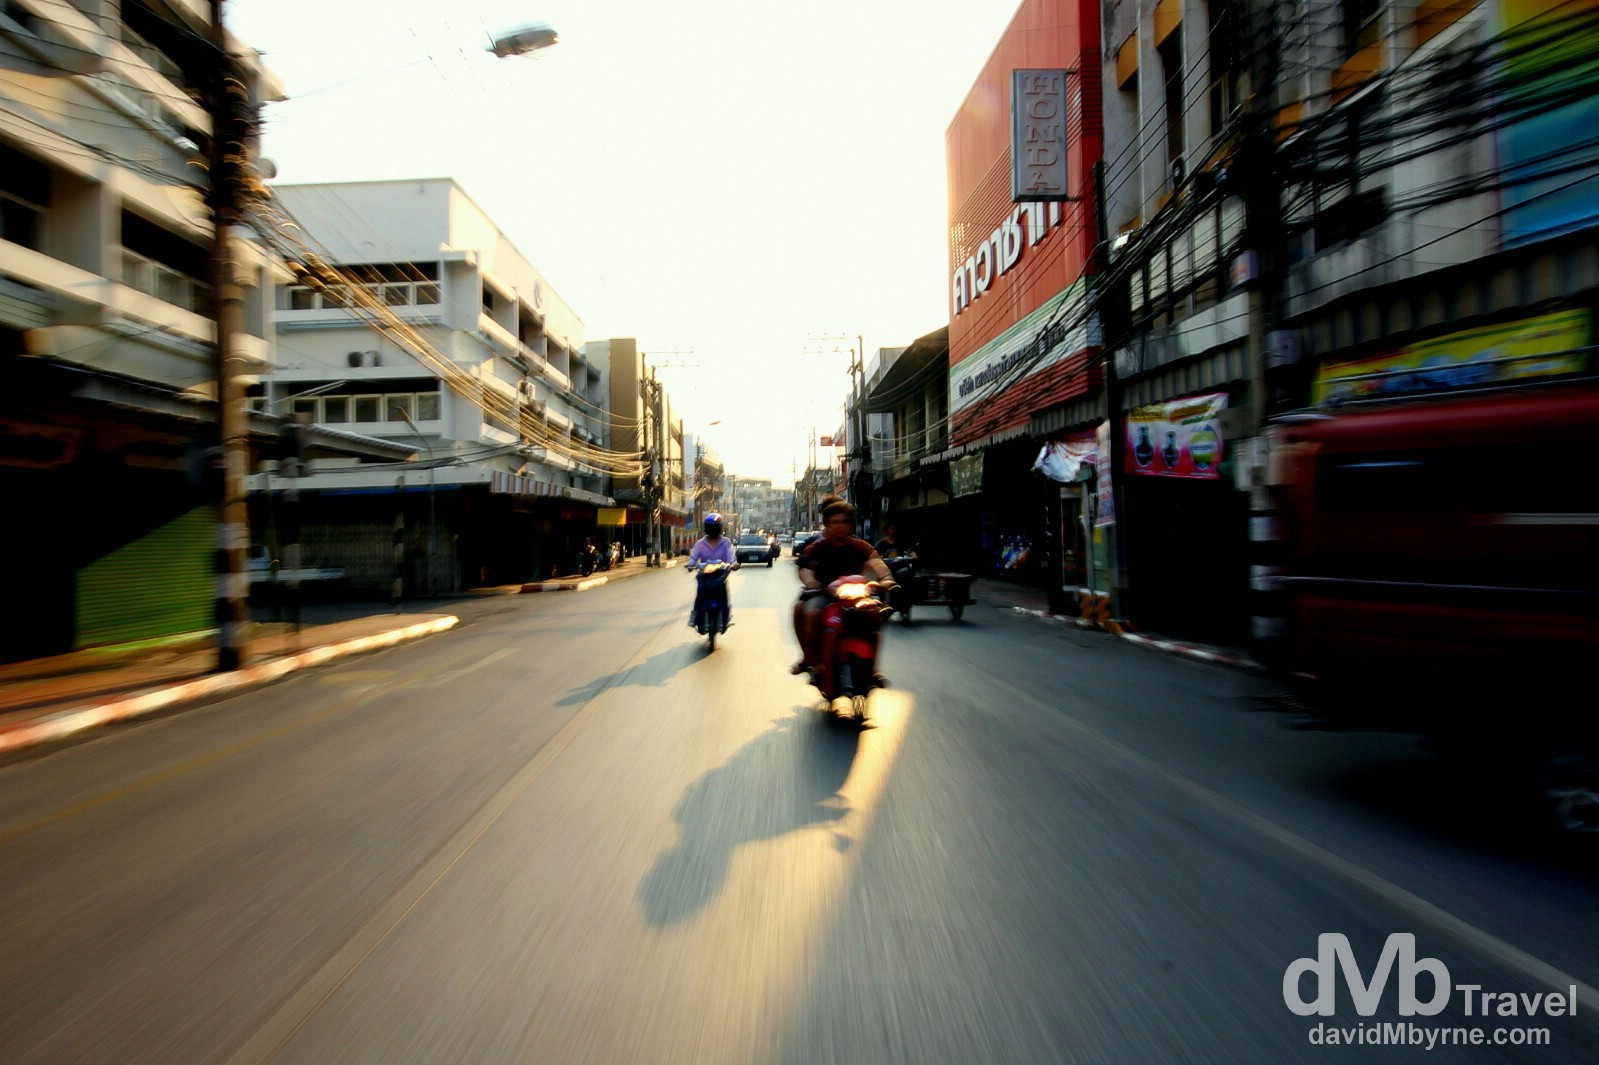 Motion & late afternoon shadows as seen from the back of a moving sawngthaew, an open-backed pick-up that doubles as a taxi, on the way to the Chiang Mai bus station to get the bus to Bangkok. March 15th 2012. on the streets of Chiang Mai, northern Thailand. March 15th 2012